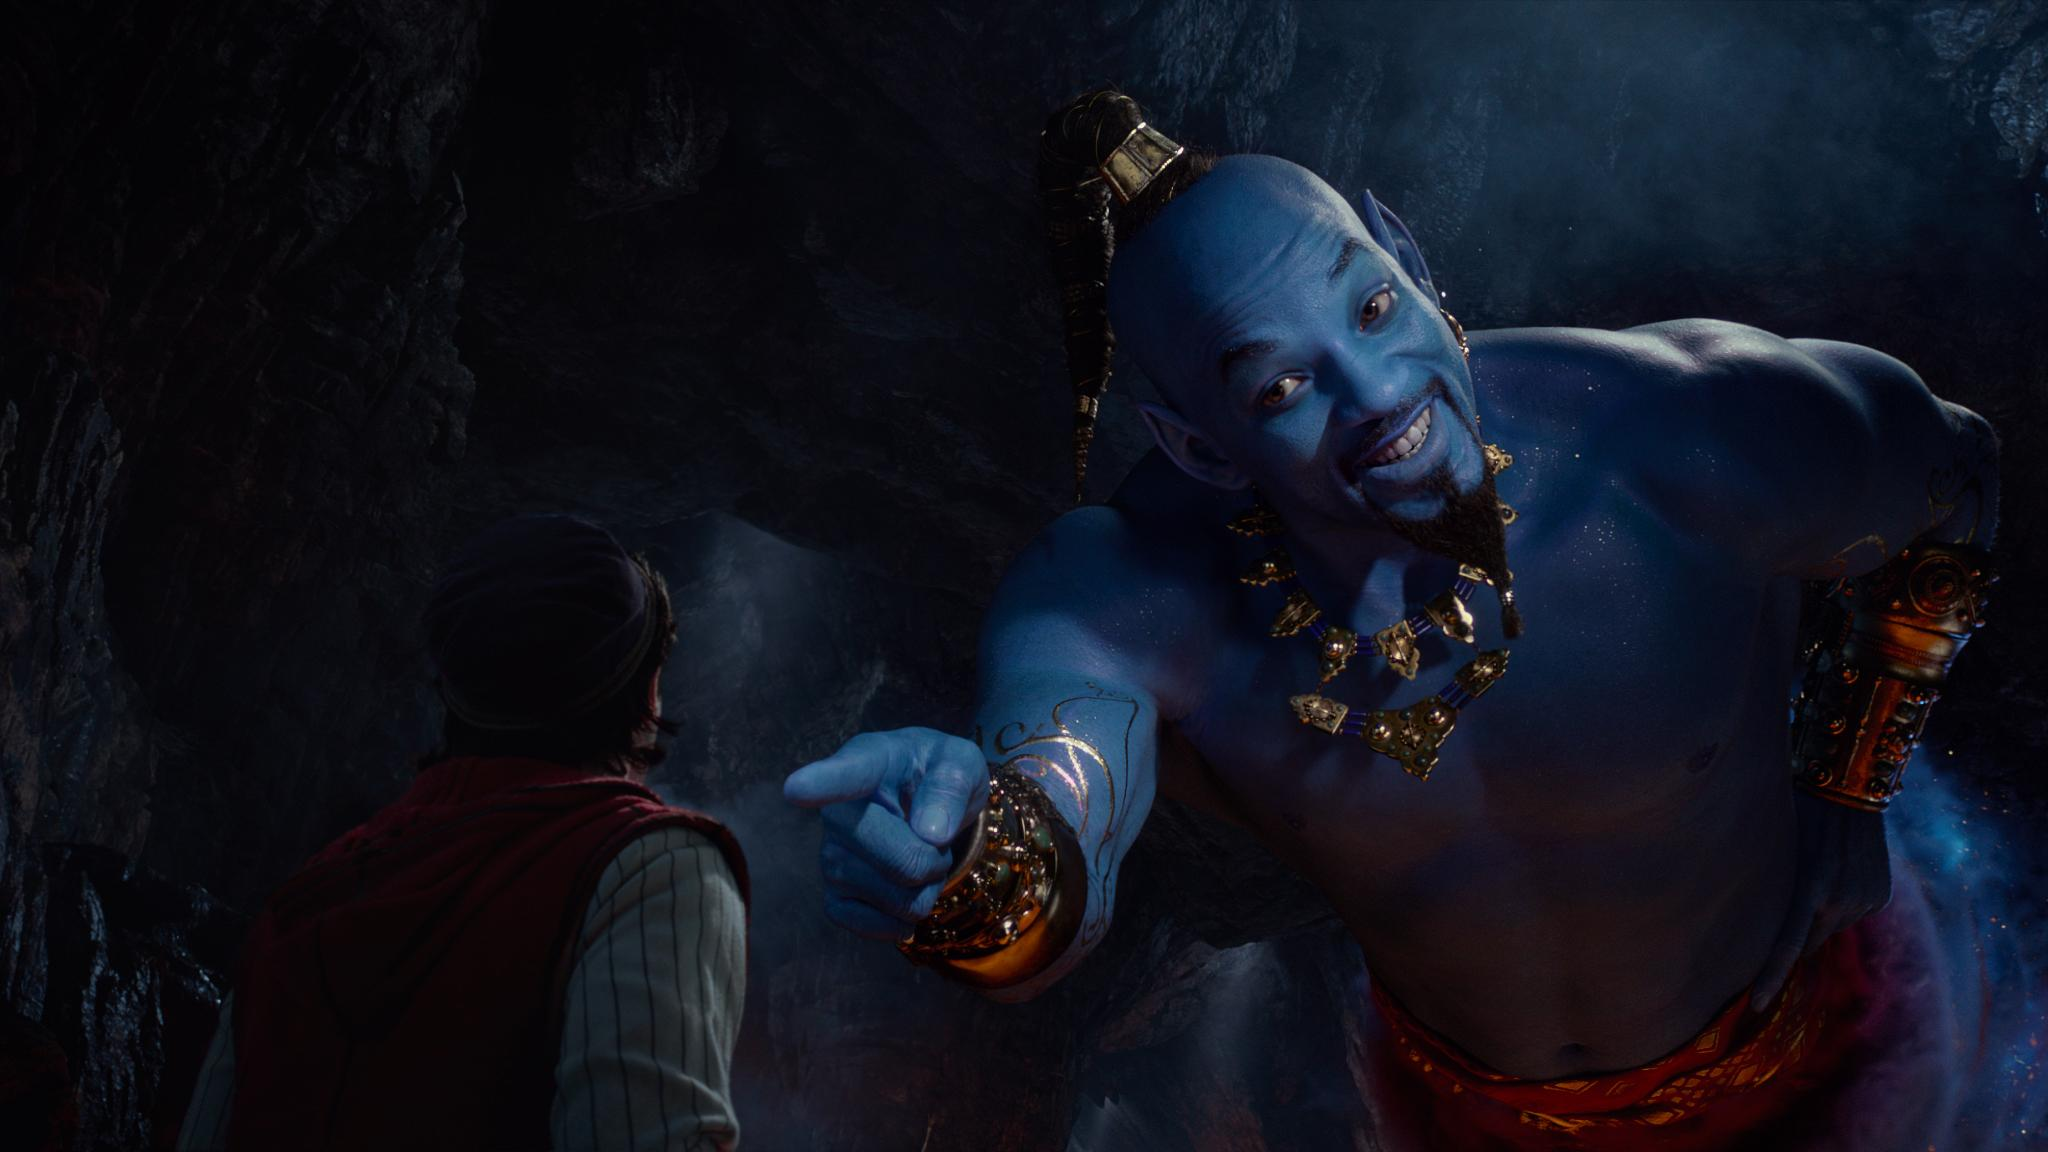 Image courtesy of Disney's live-action ALADDIN, directed by Guy Ritchie.